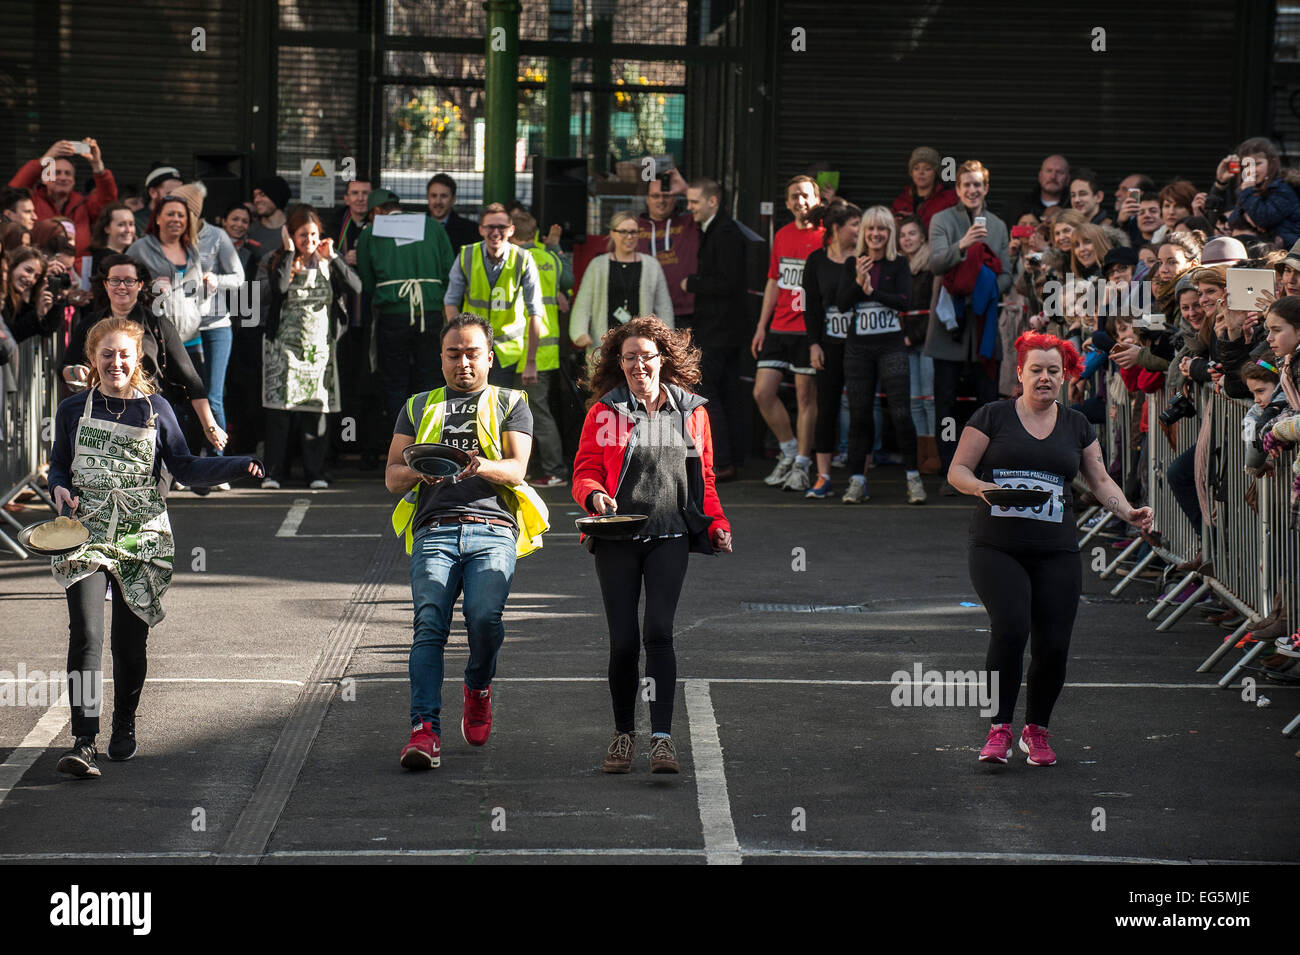 London, UK. 17th February, 2015.  The Better Bankside Annual Charity Pancake Race at Borough Market.  Credit:  Gordon - Stock Image